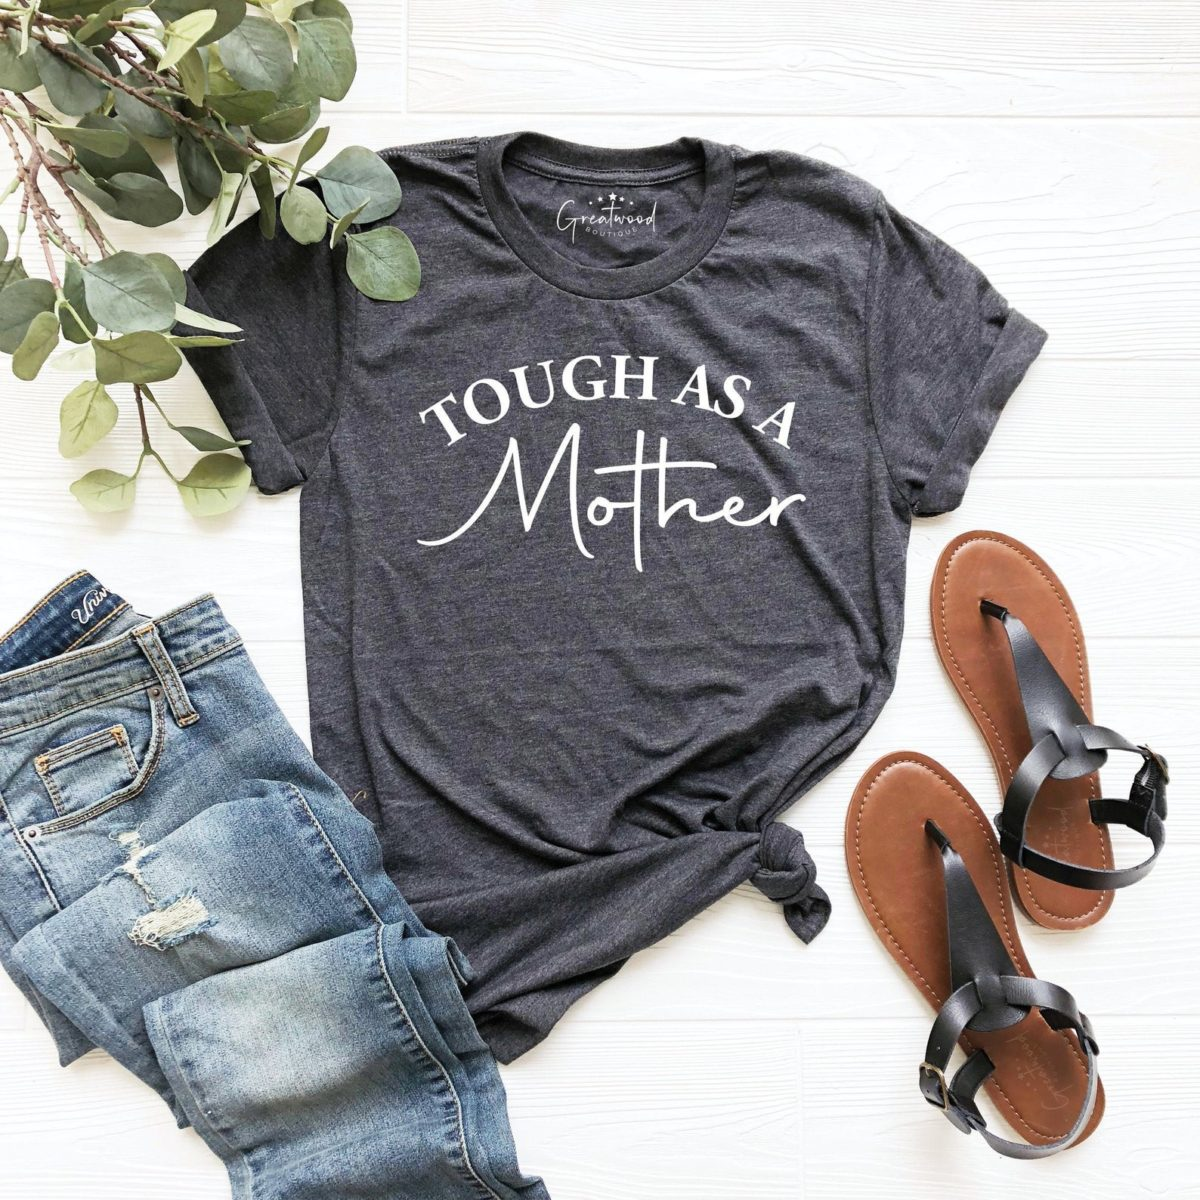 26 awesome etsy t-shirts that send a positive message and make great gifts | parenting questions | mamas uncut il 1588xn.2966783764 r5w8